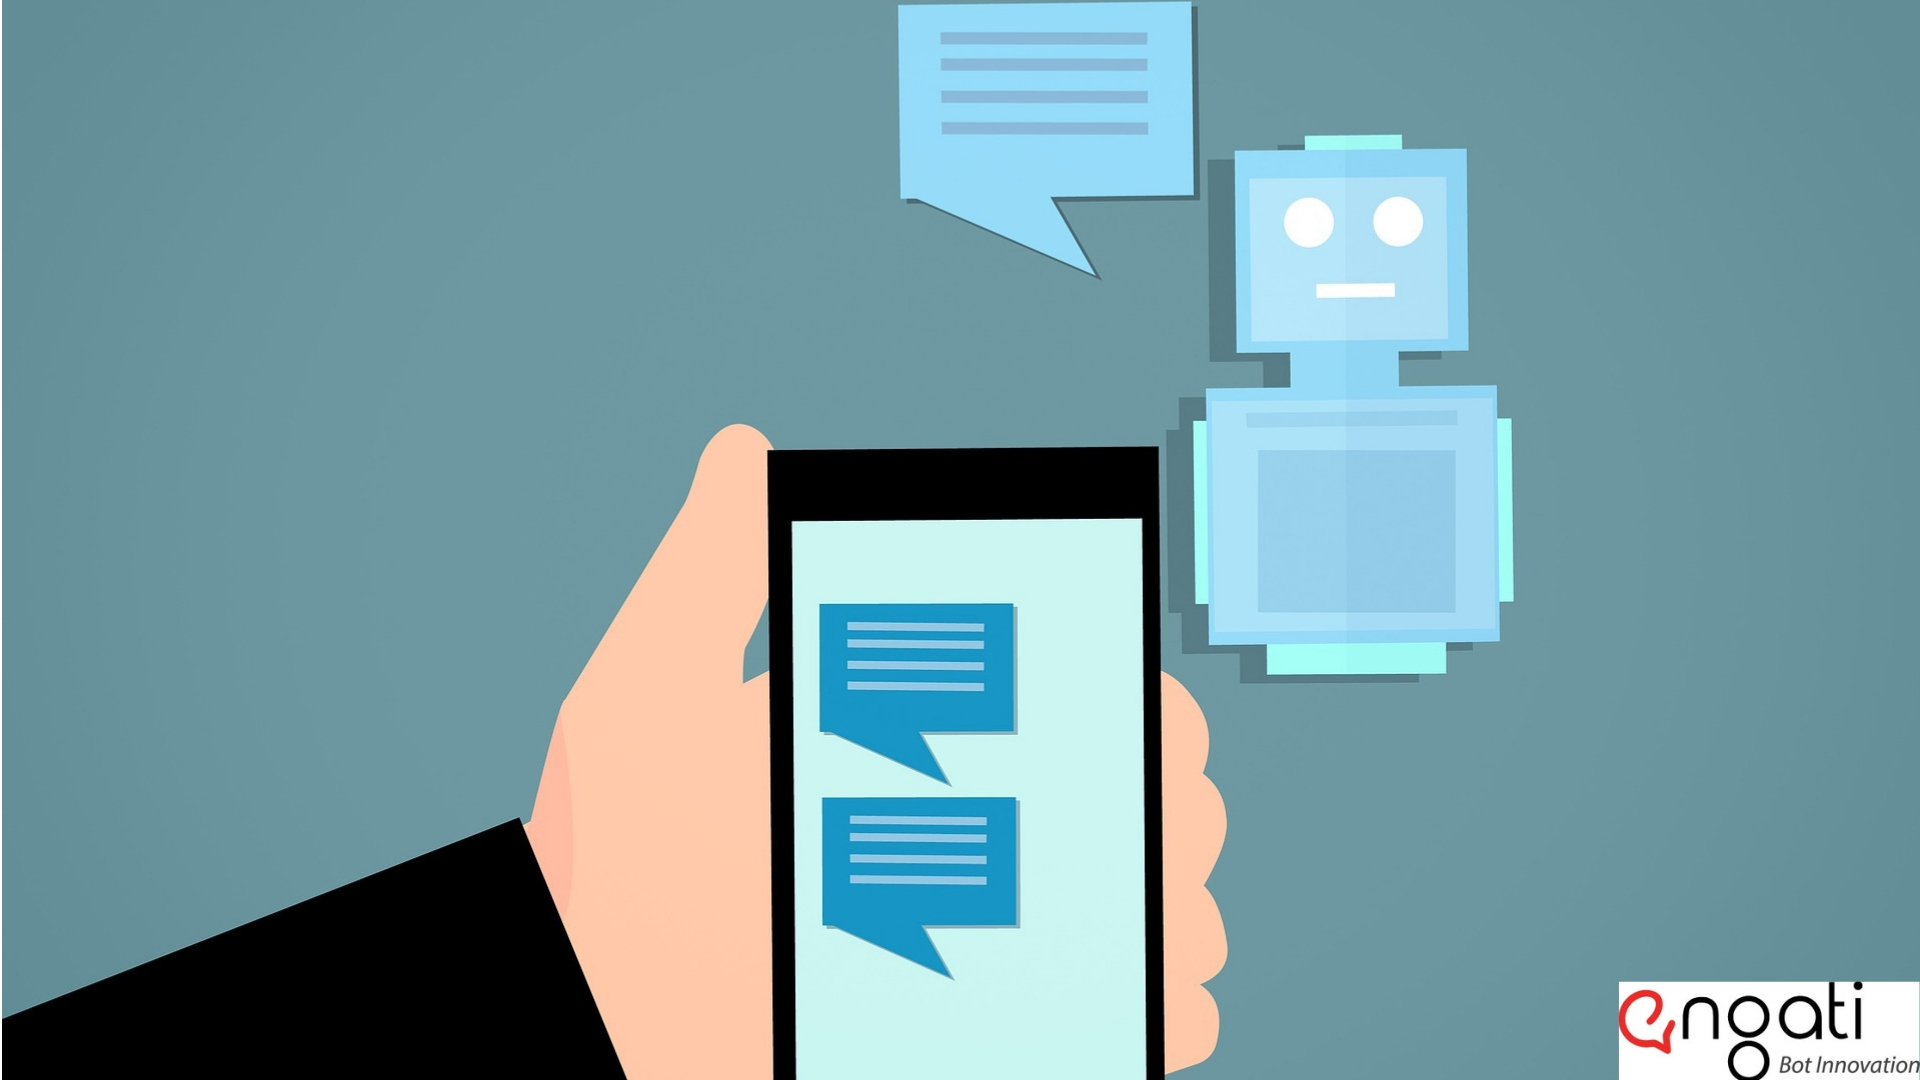 chatbot conversation with context